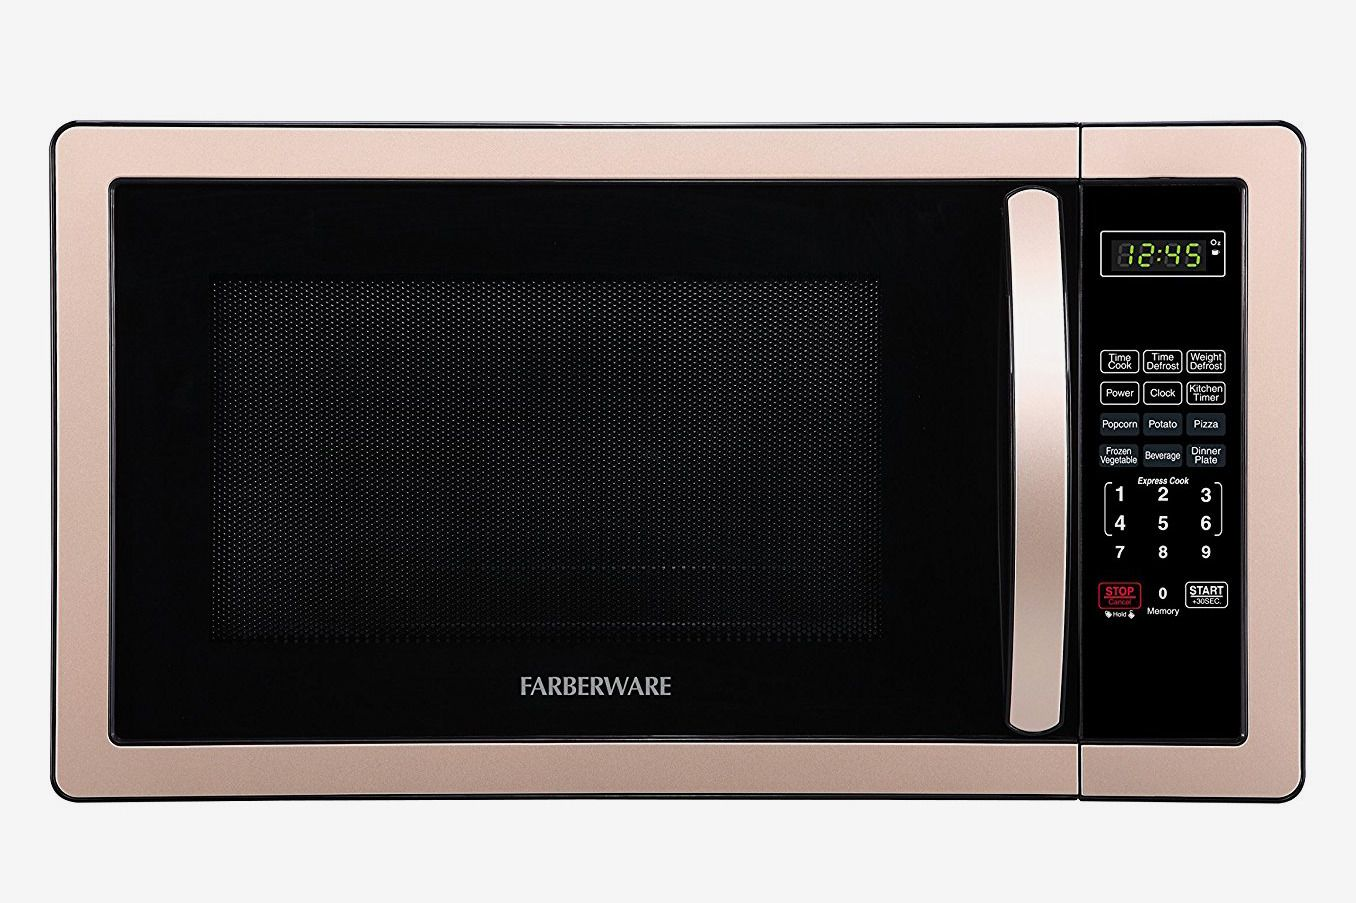 The Best Microwave Ovens On Amazon According To Hyperenthusiastic Reviewers Microwave Countertop Microwave Countertop Microwave Oven